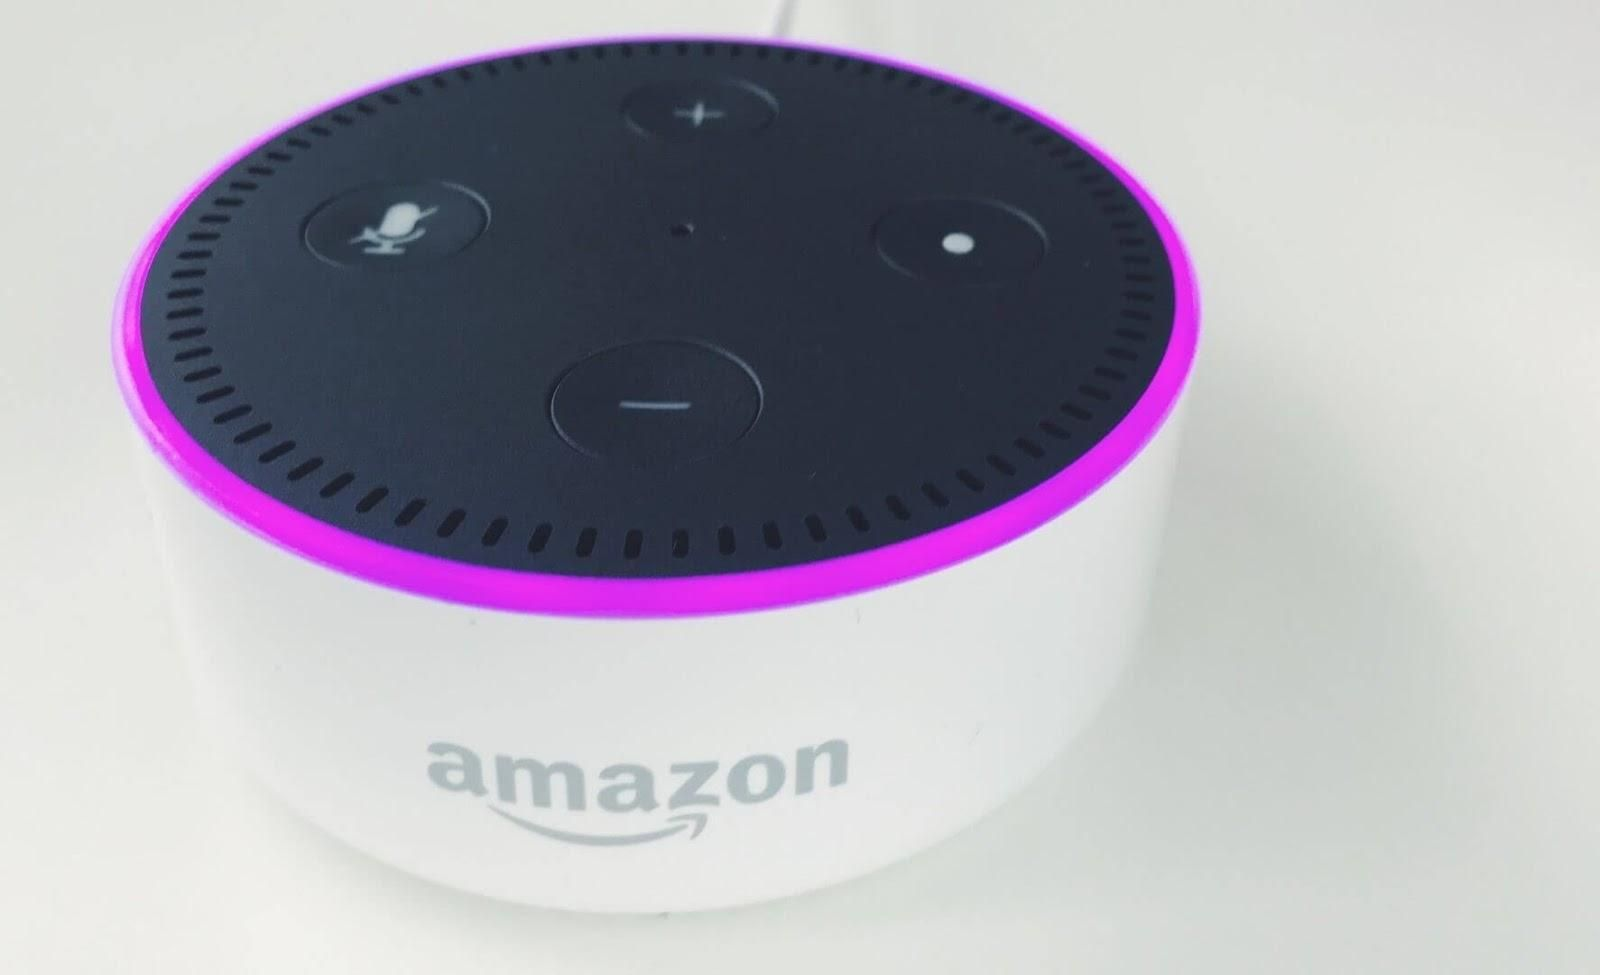 Picture of an Amazon Echo Dot.